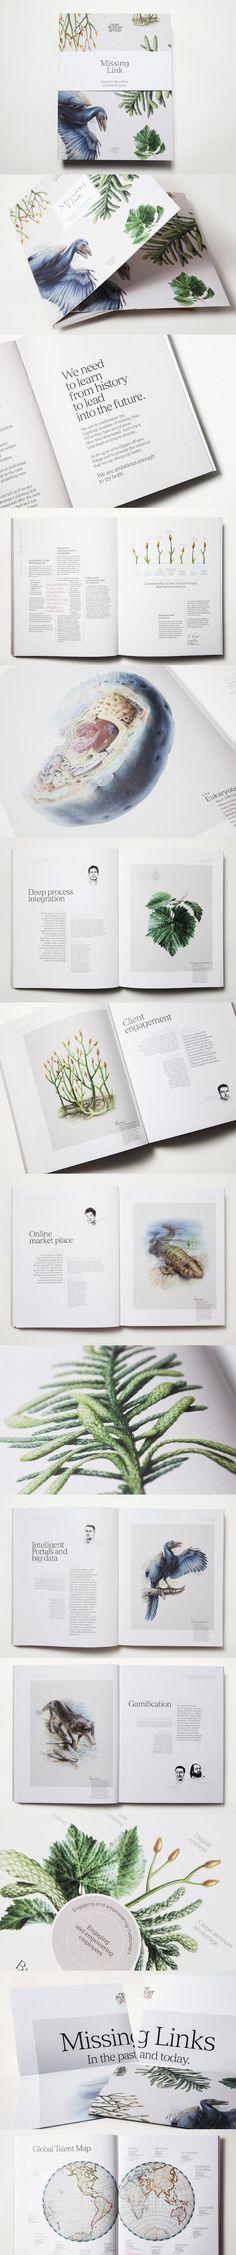 """The Missing Link"" annnual report for New Frontier Group by This is Paper, featuring prehistoric flora & fauna illustrations. http://thisispaper.com/moodley-brand-identity-The-Missing-Link"